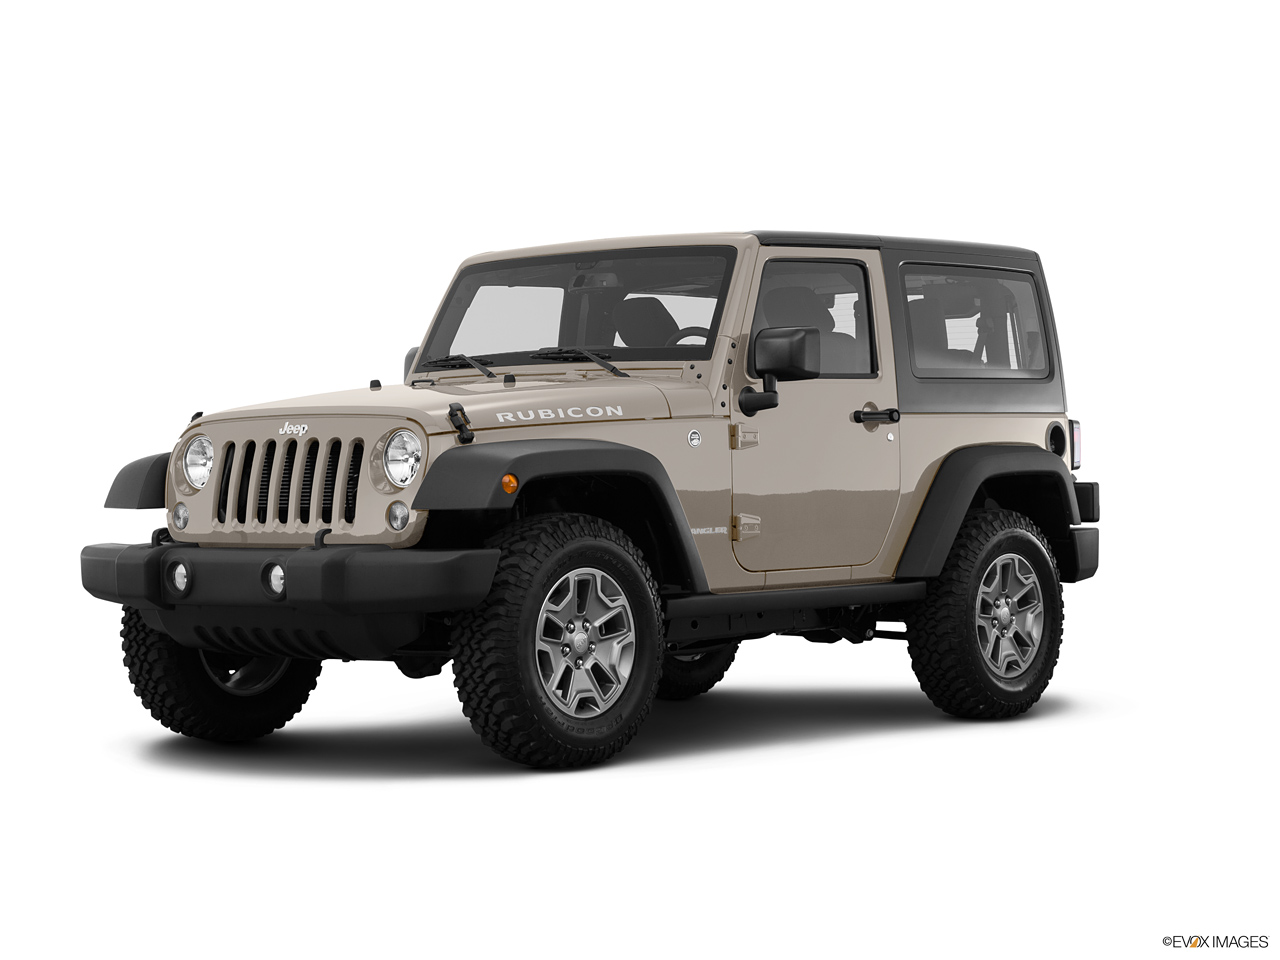 car features list for jeep wrangler 2016 rubicon 3 6l auto. Black Bedroom Furniture Sets. Home Design Ideas